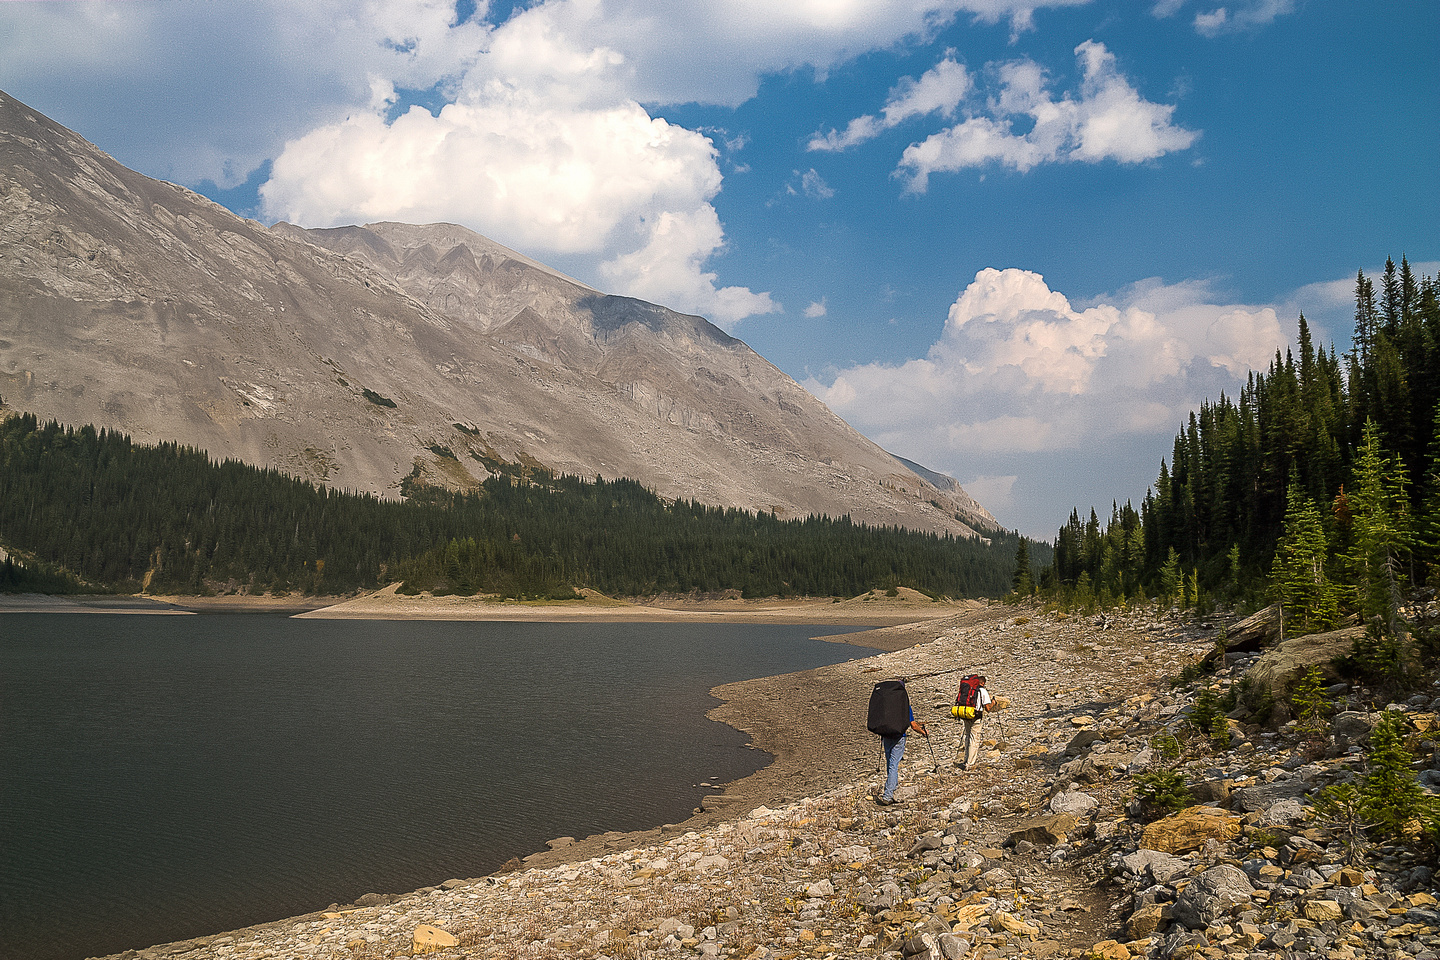 Hiking along Three Isle Lake to our campsite which is located on the left side in the distance around the shoreline. Mount Putnik rises on the left.